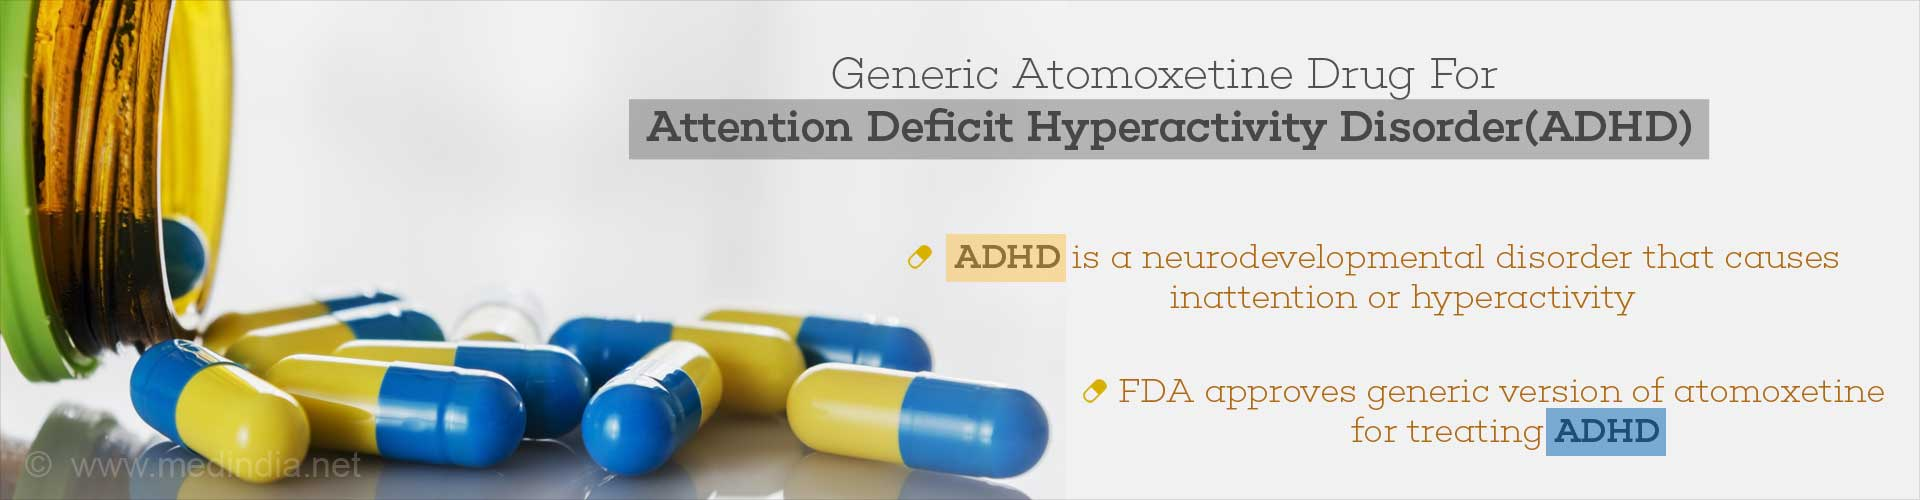 Generic atomoxetine drug for Attention Deficit Hyperactivity Disorder (AHDH)